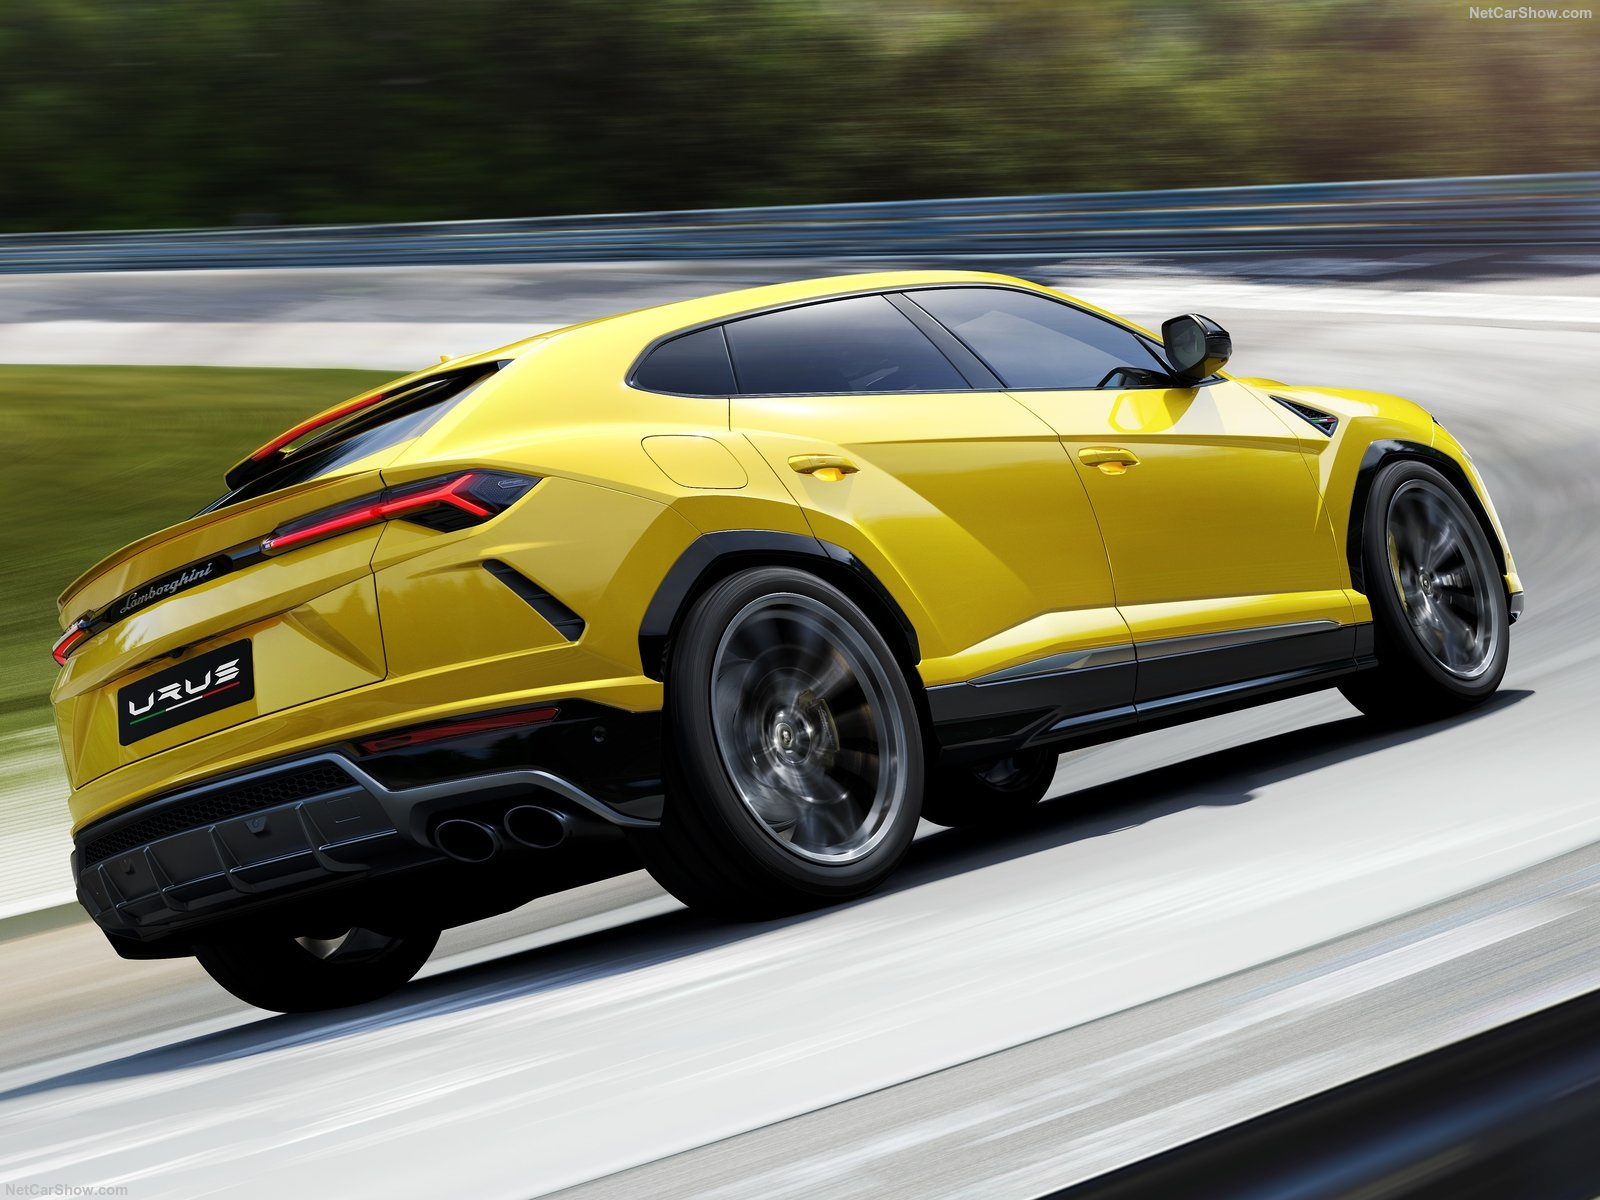 lamborghini urus quand l 39 audi q7 se mue en bulldozer records. Black Bedroom Furniture Sets. Home Design Ideas